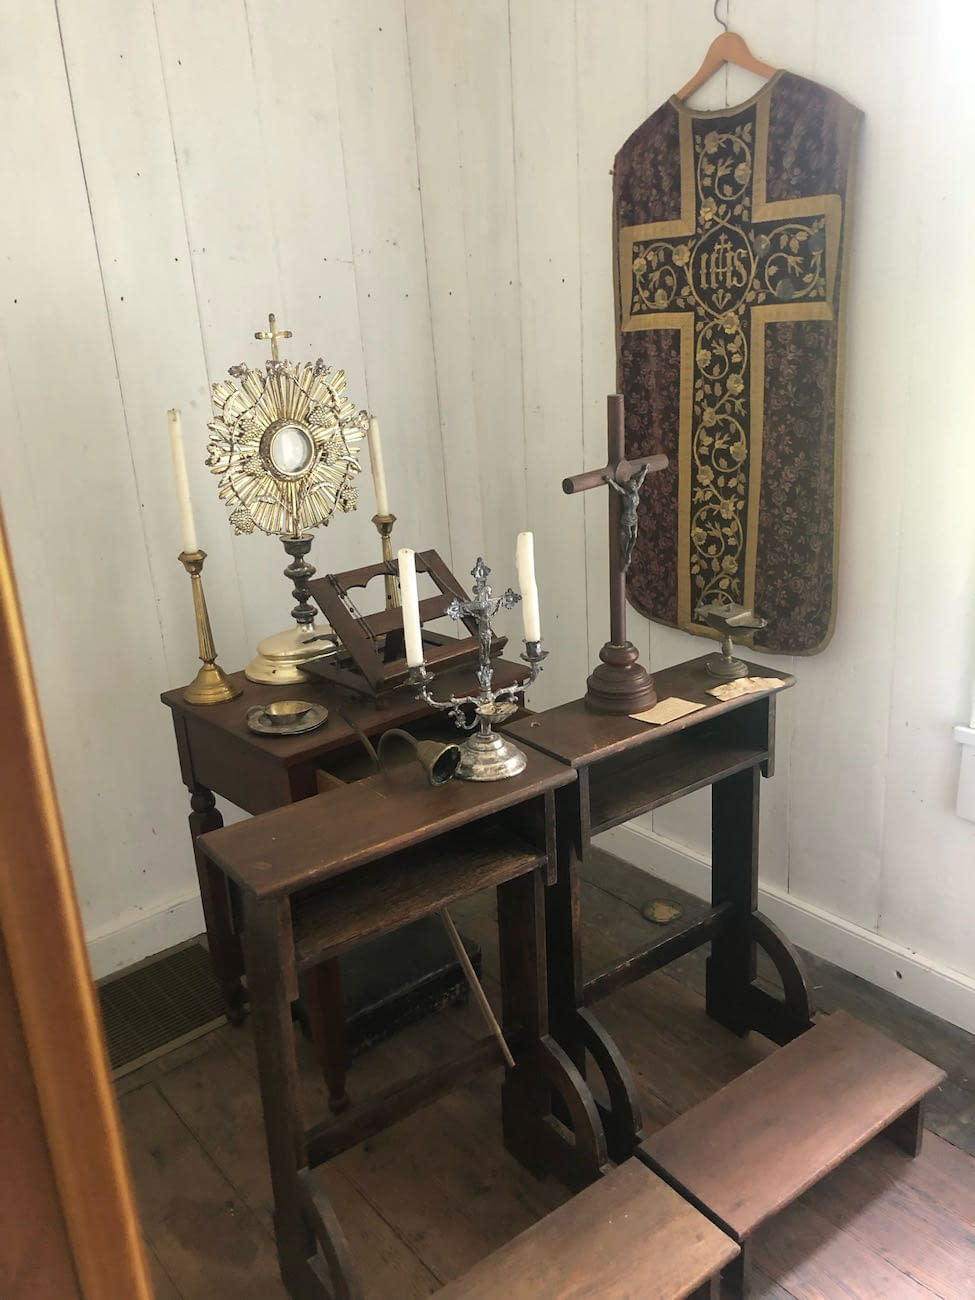 Sacred Items in St. Thomas Seminary Building